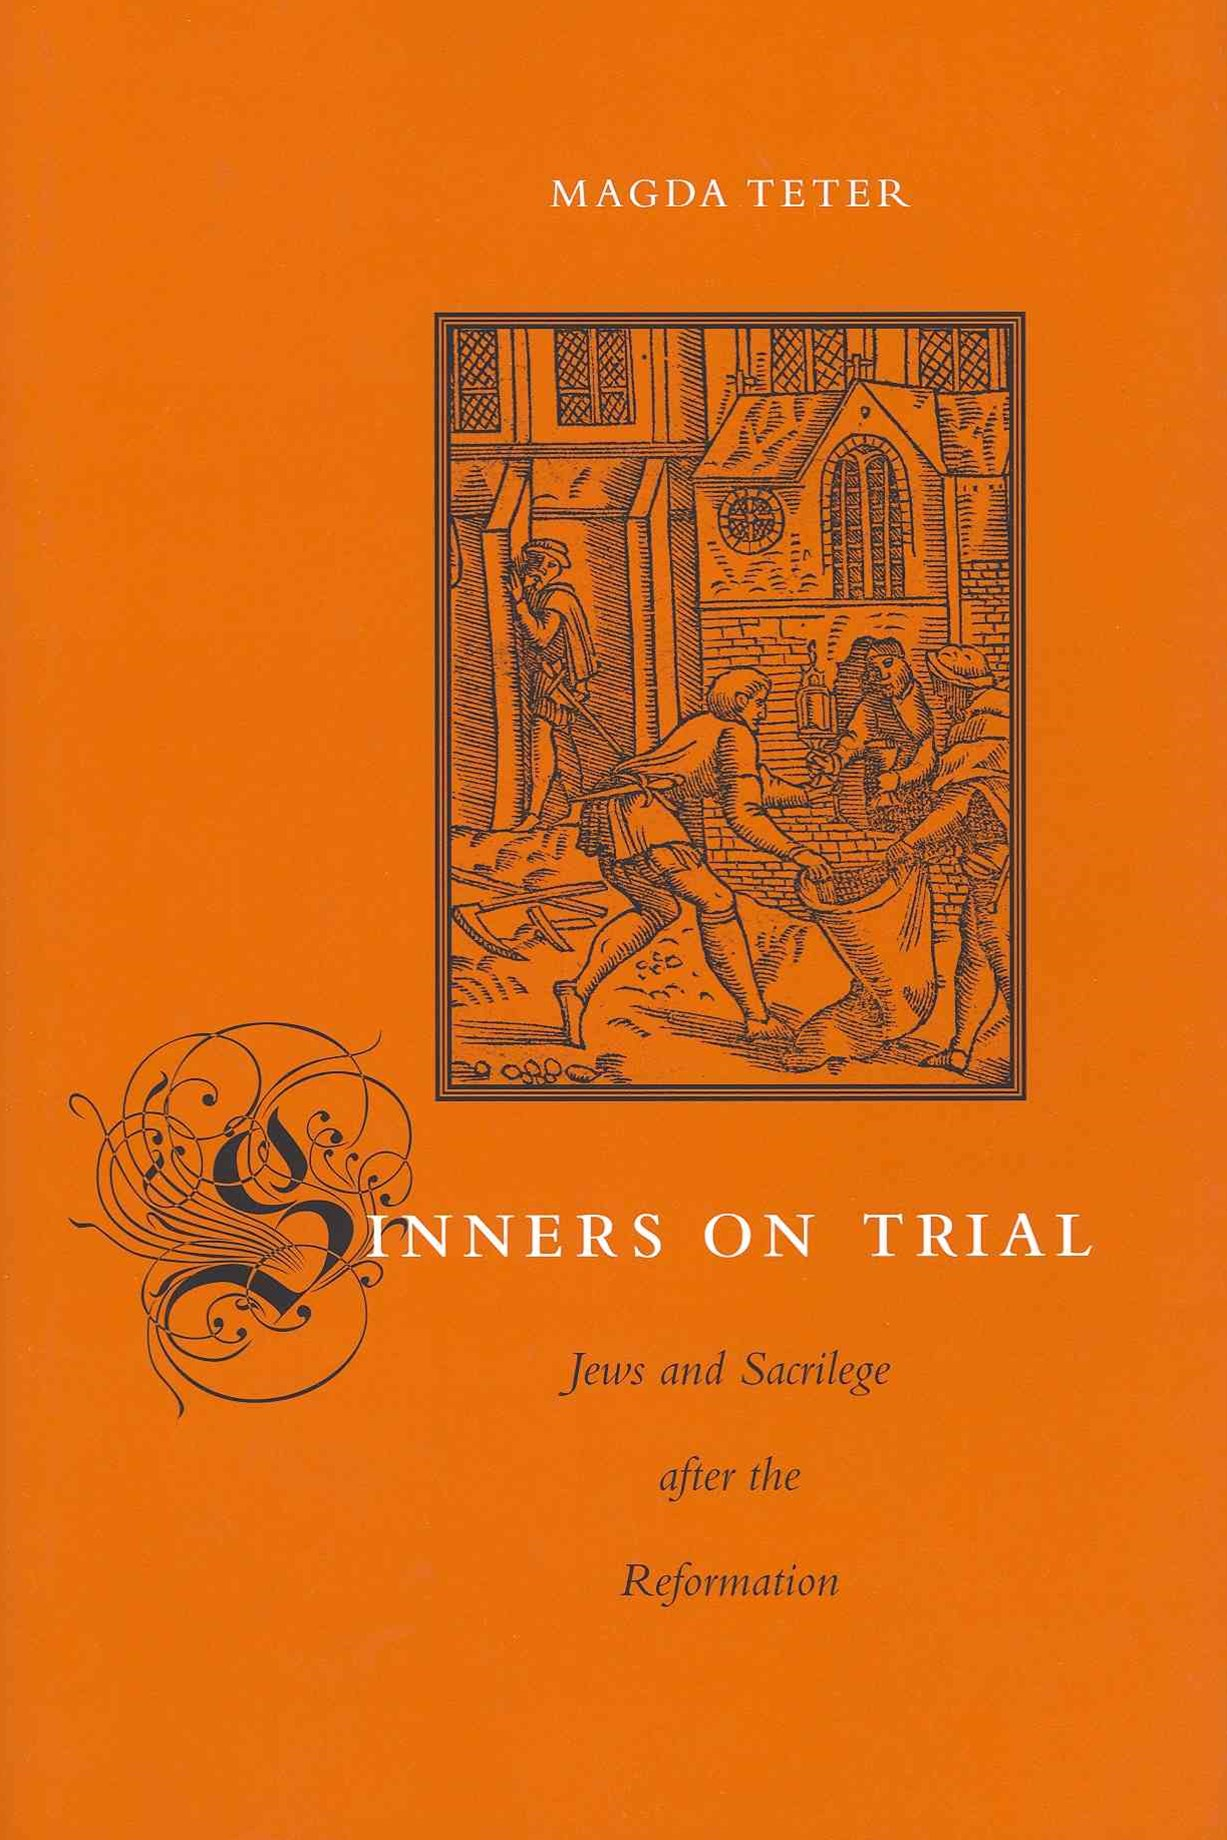 Sinners on Trial